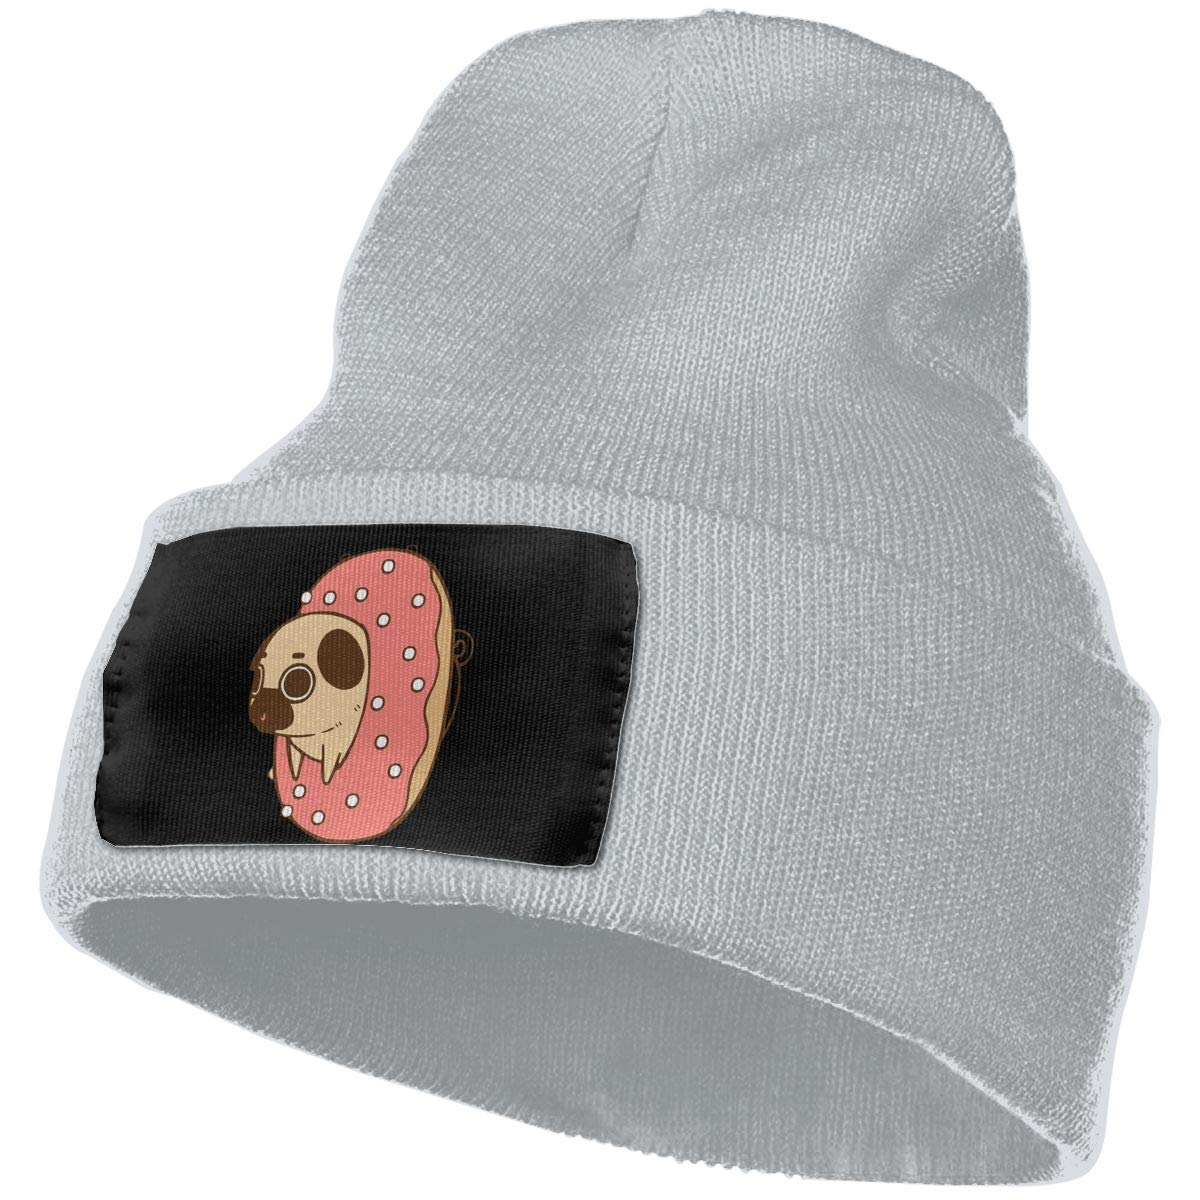 Puppy Donuts Thick Beanie Hat WHOO93@Y Mens Womens 100/% Acrylic Knitted Hat Cap